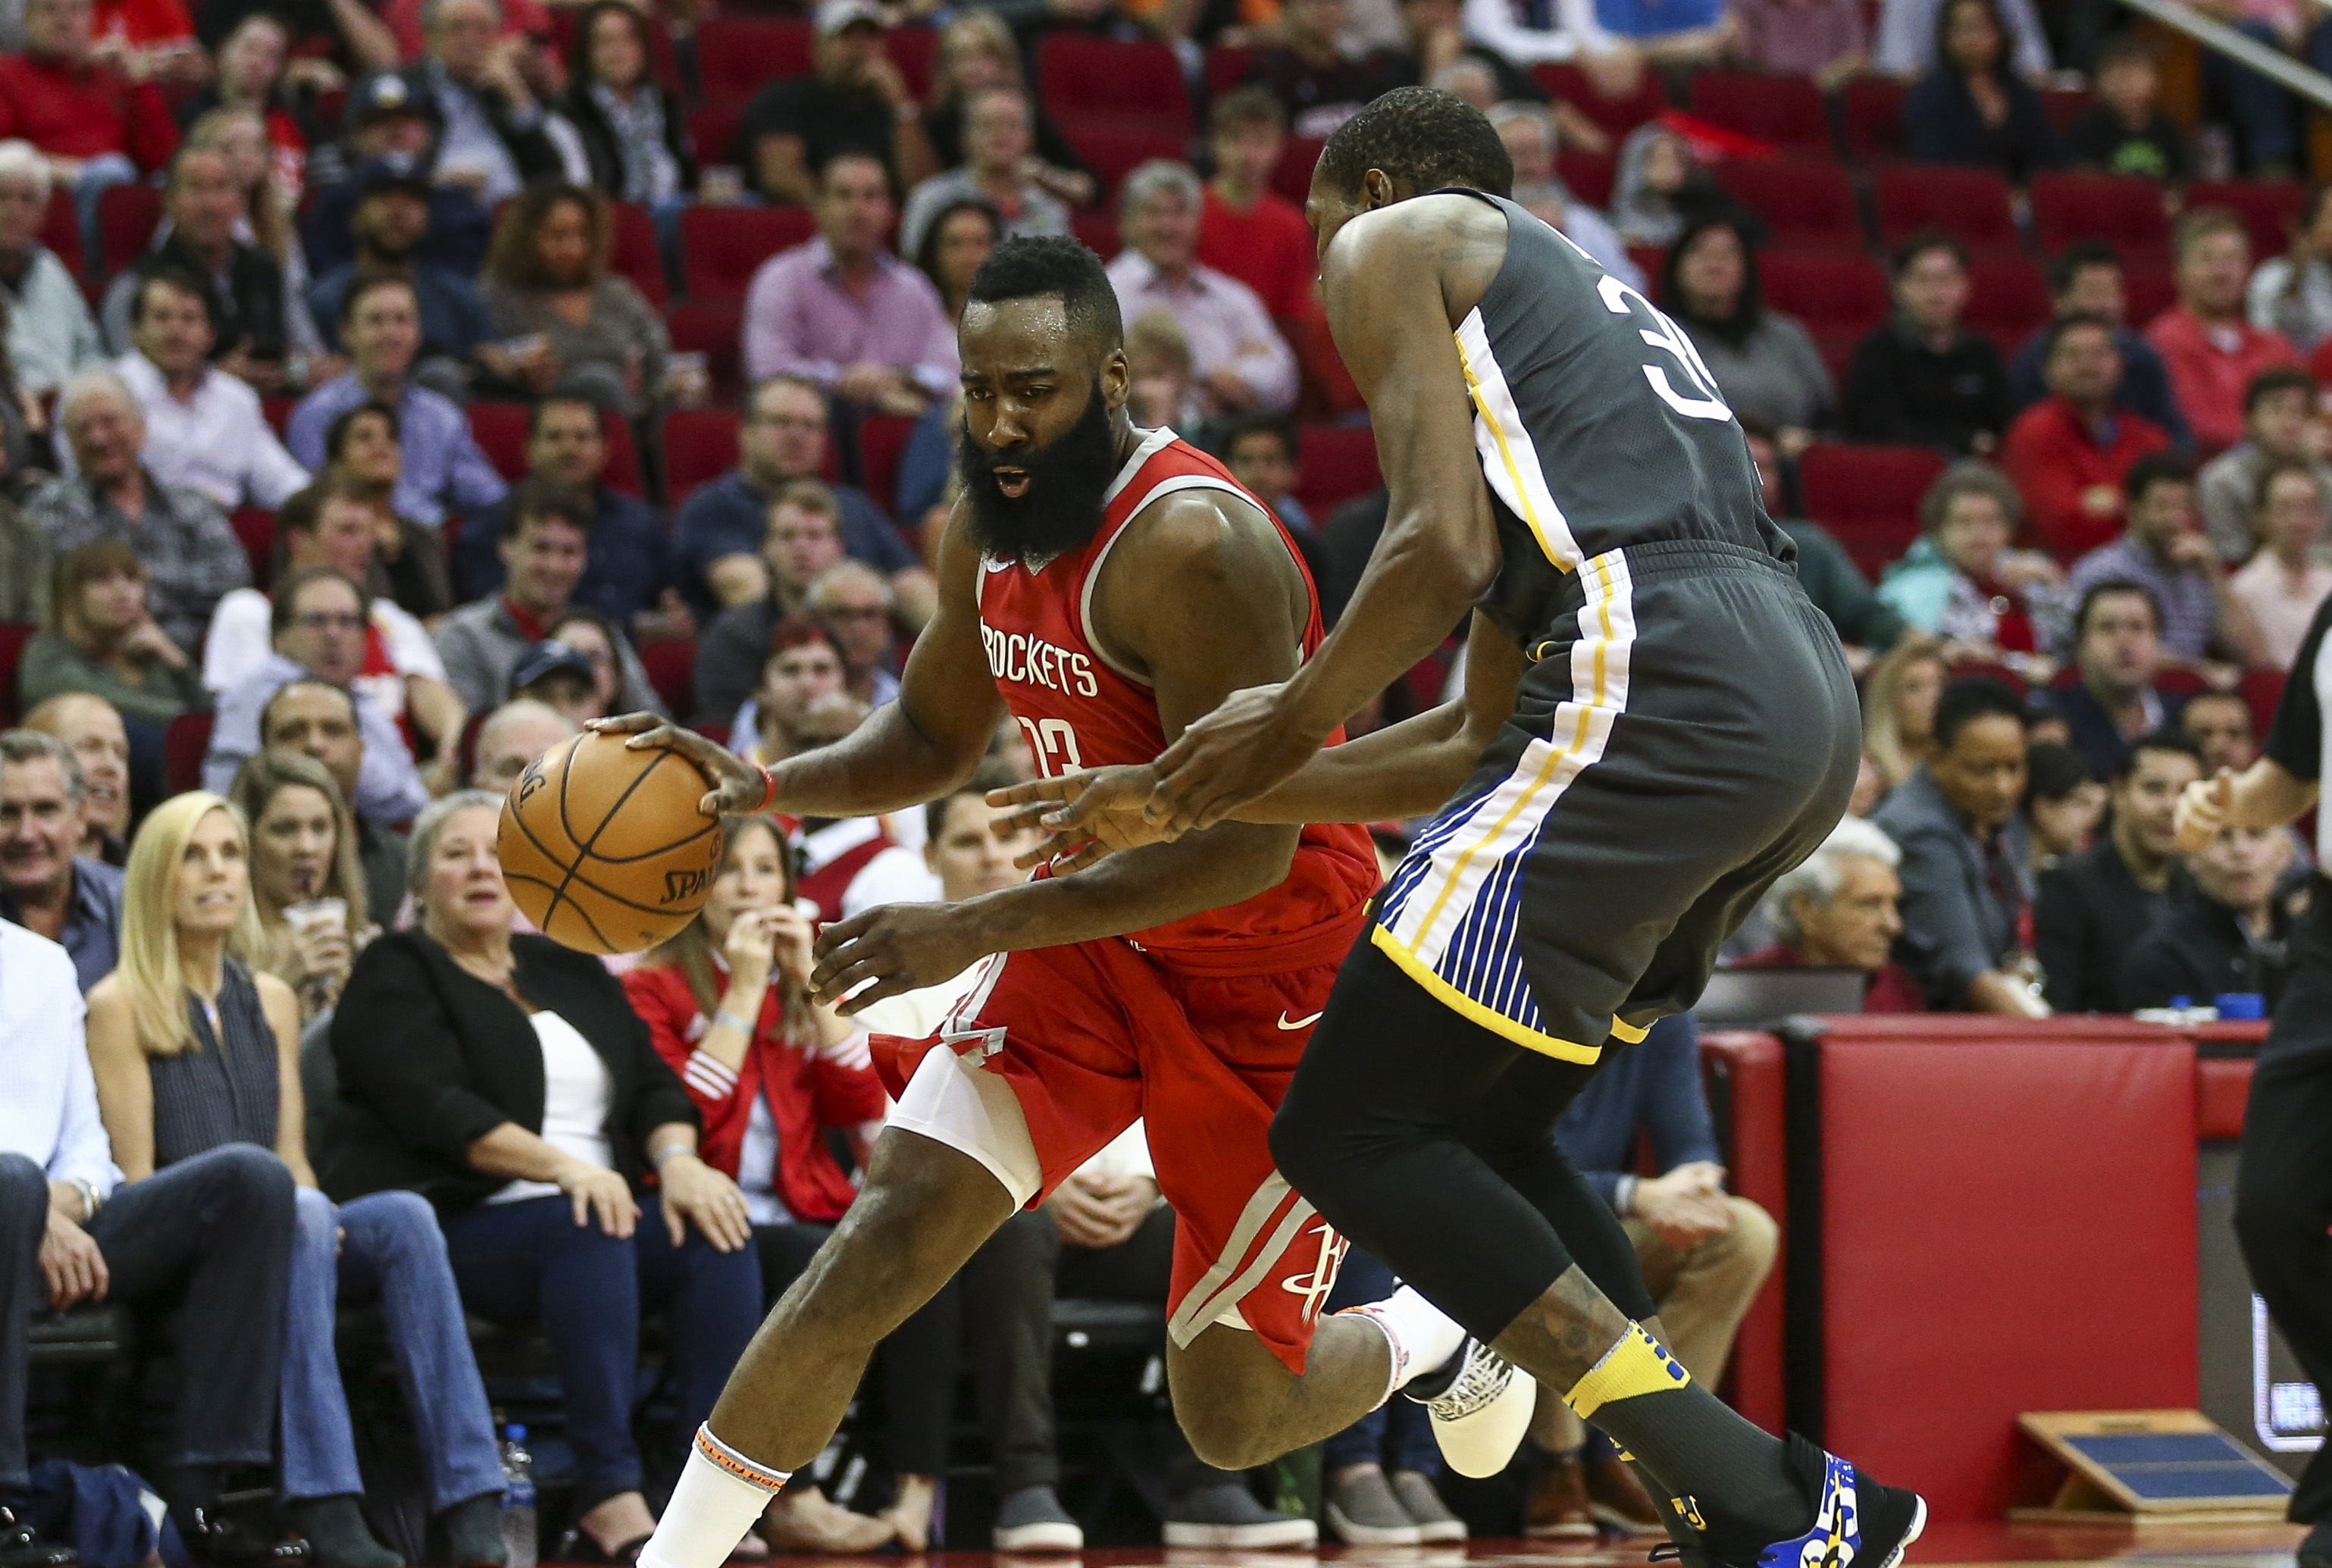 Golden State's road win streak snapped in Houston, but Warriors aren't concerned